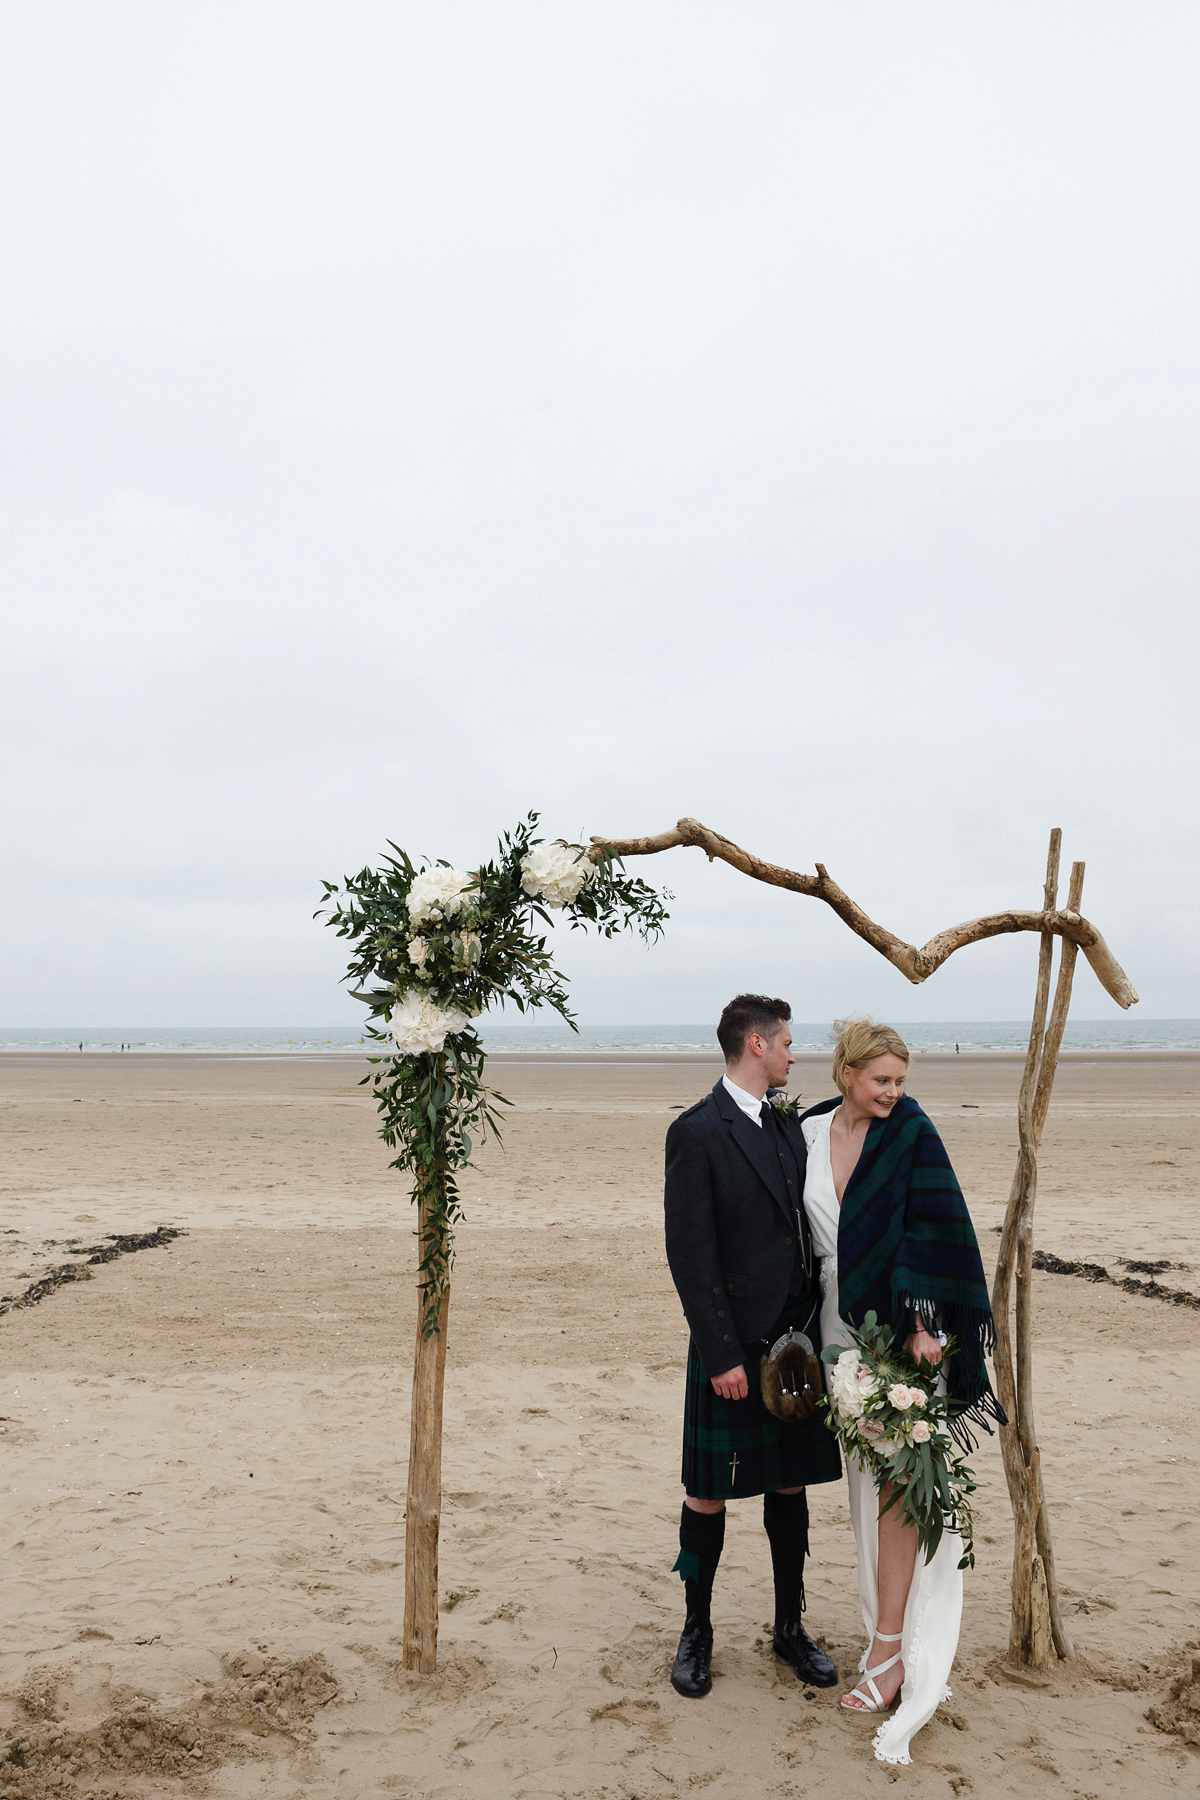 Laura wears a 1970's inspired Stone Cold Fox wedding dress for her laid back and organic beach wedding in Scotland. Photography by Tino and Pip.